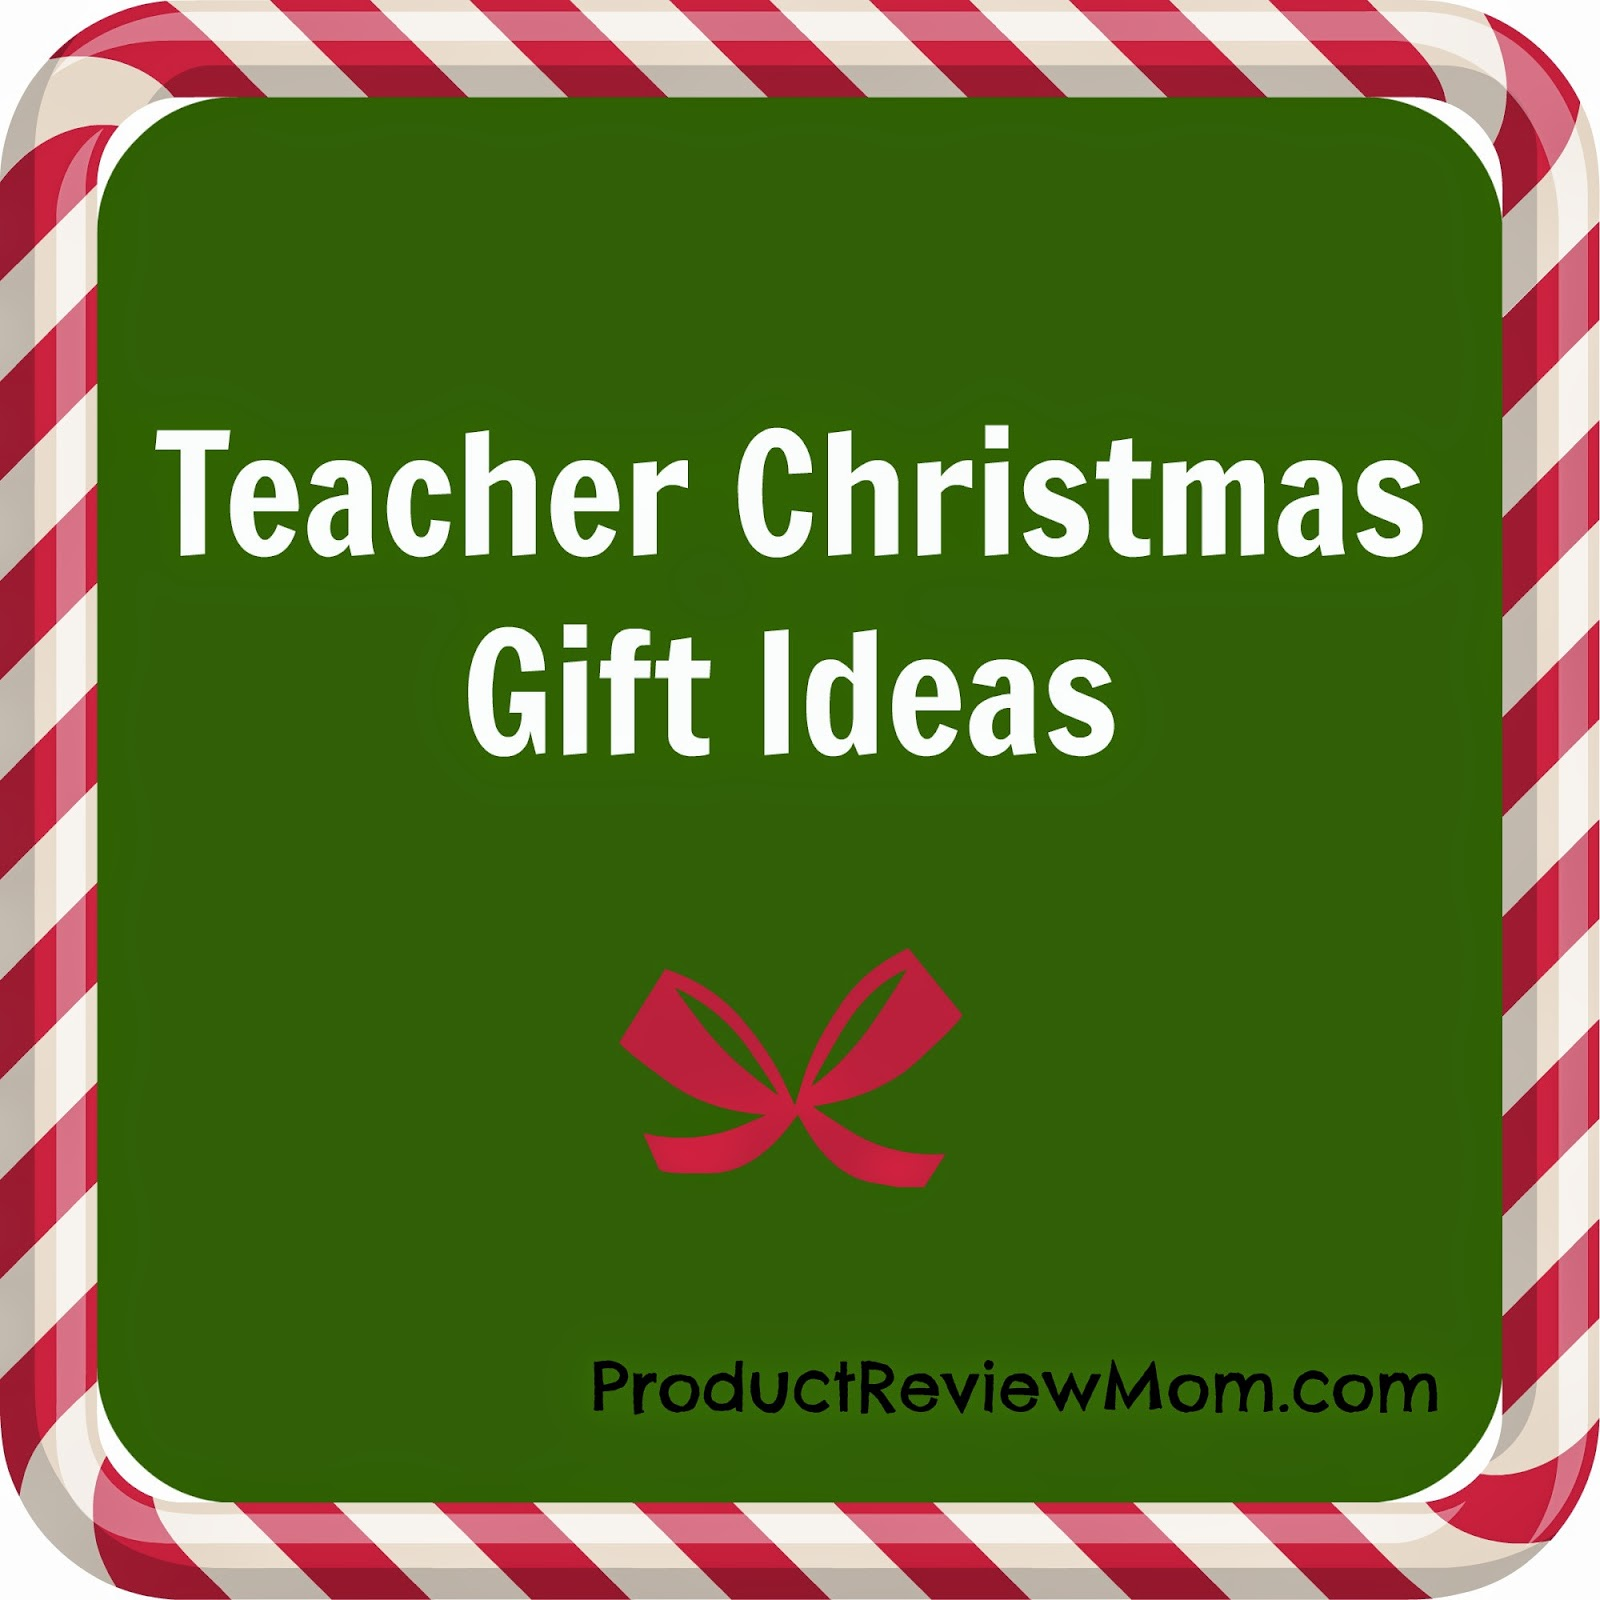 Teacher Christmas Gift Ideas #HolidayGiftGuide via www.productreviewmom.com